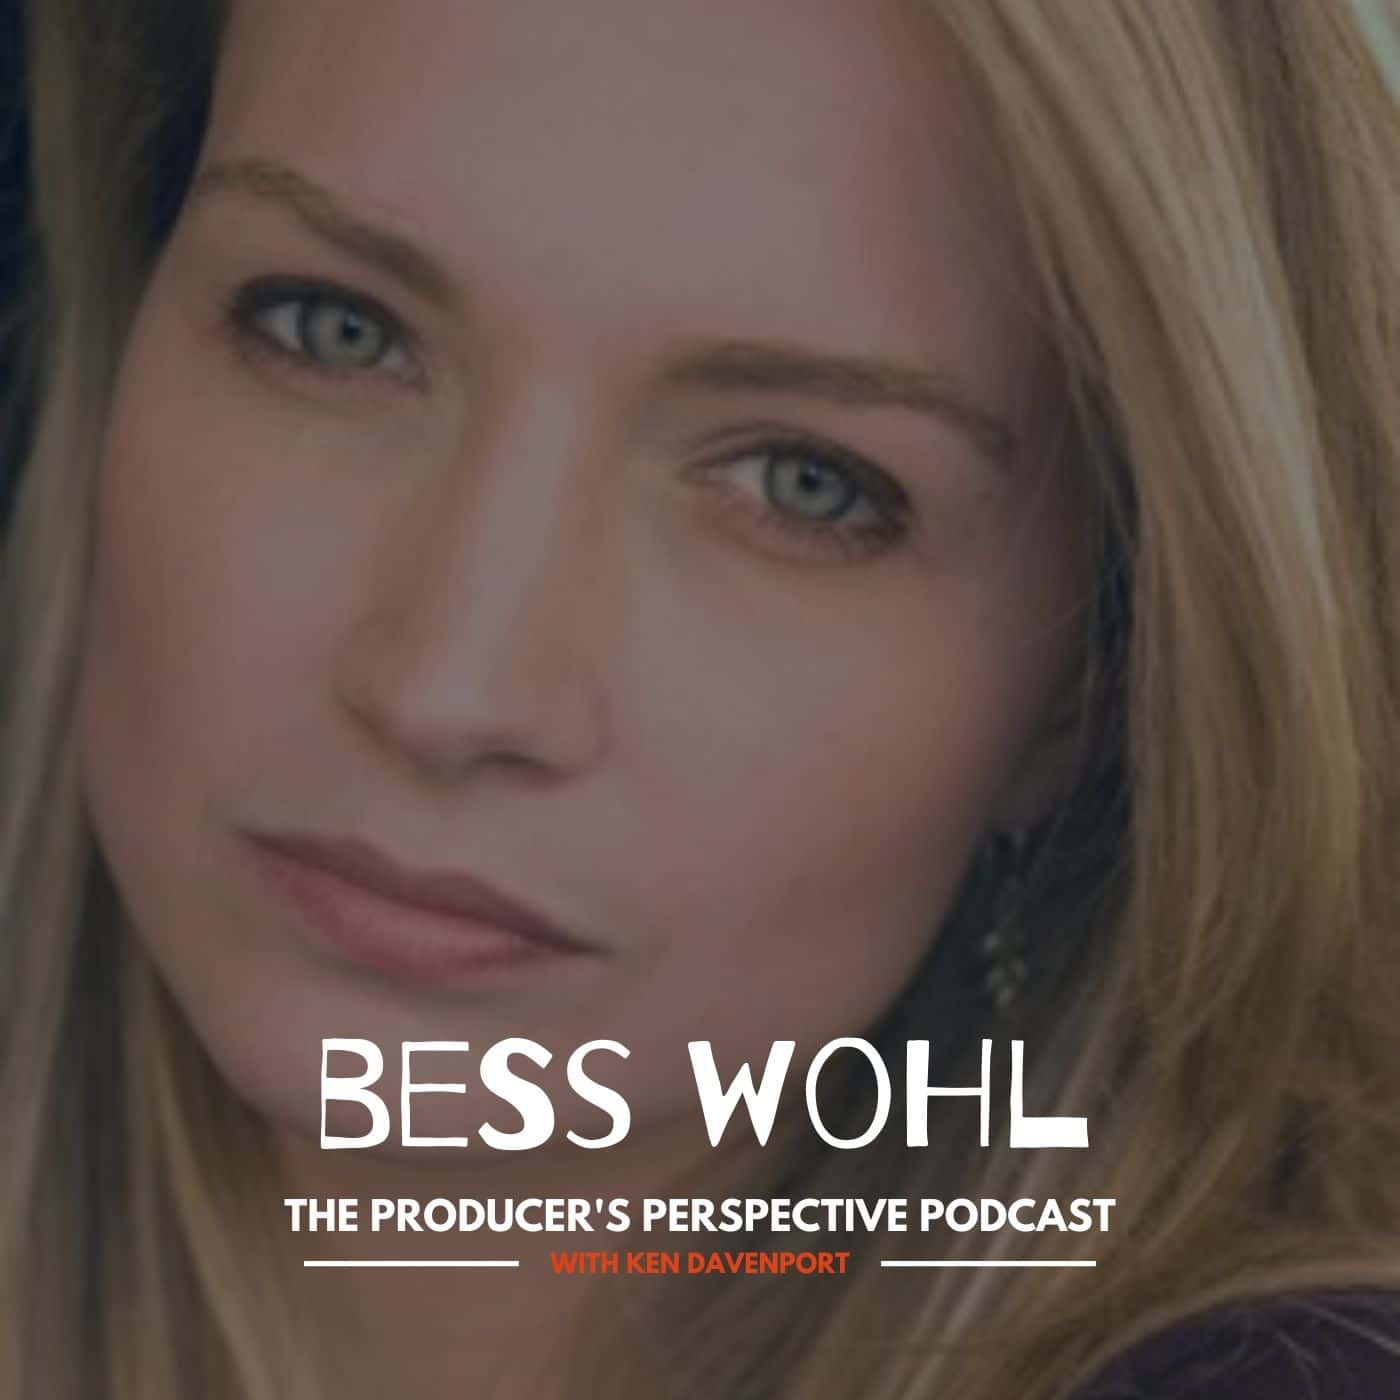 Ken Davenport's The Producer's Perspective Podcast Episode 93 - Bess Wohl